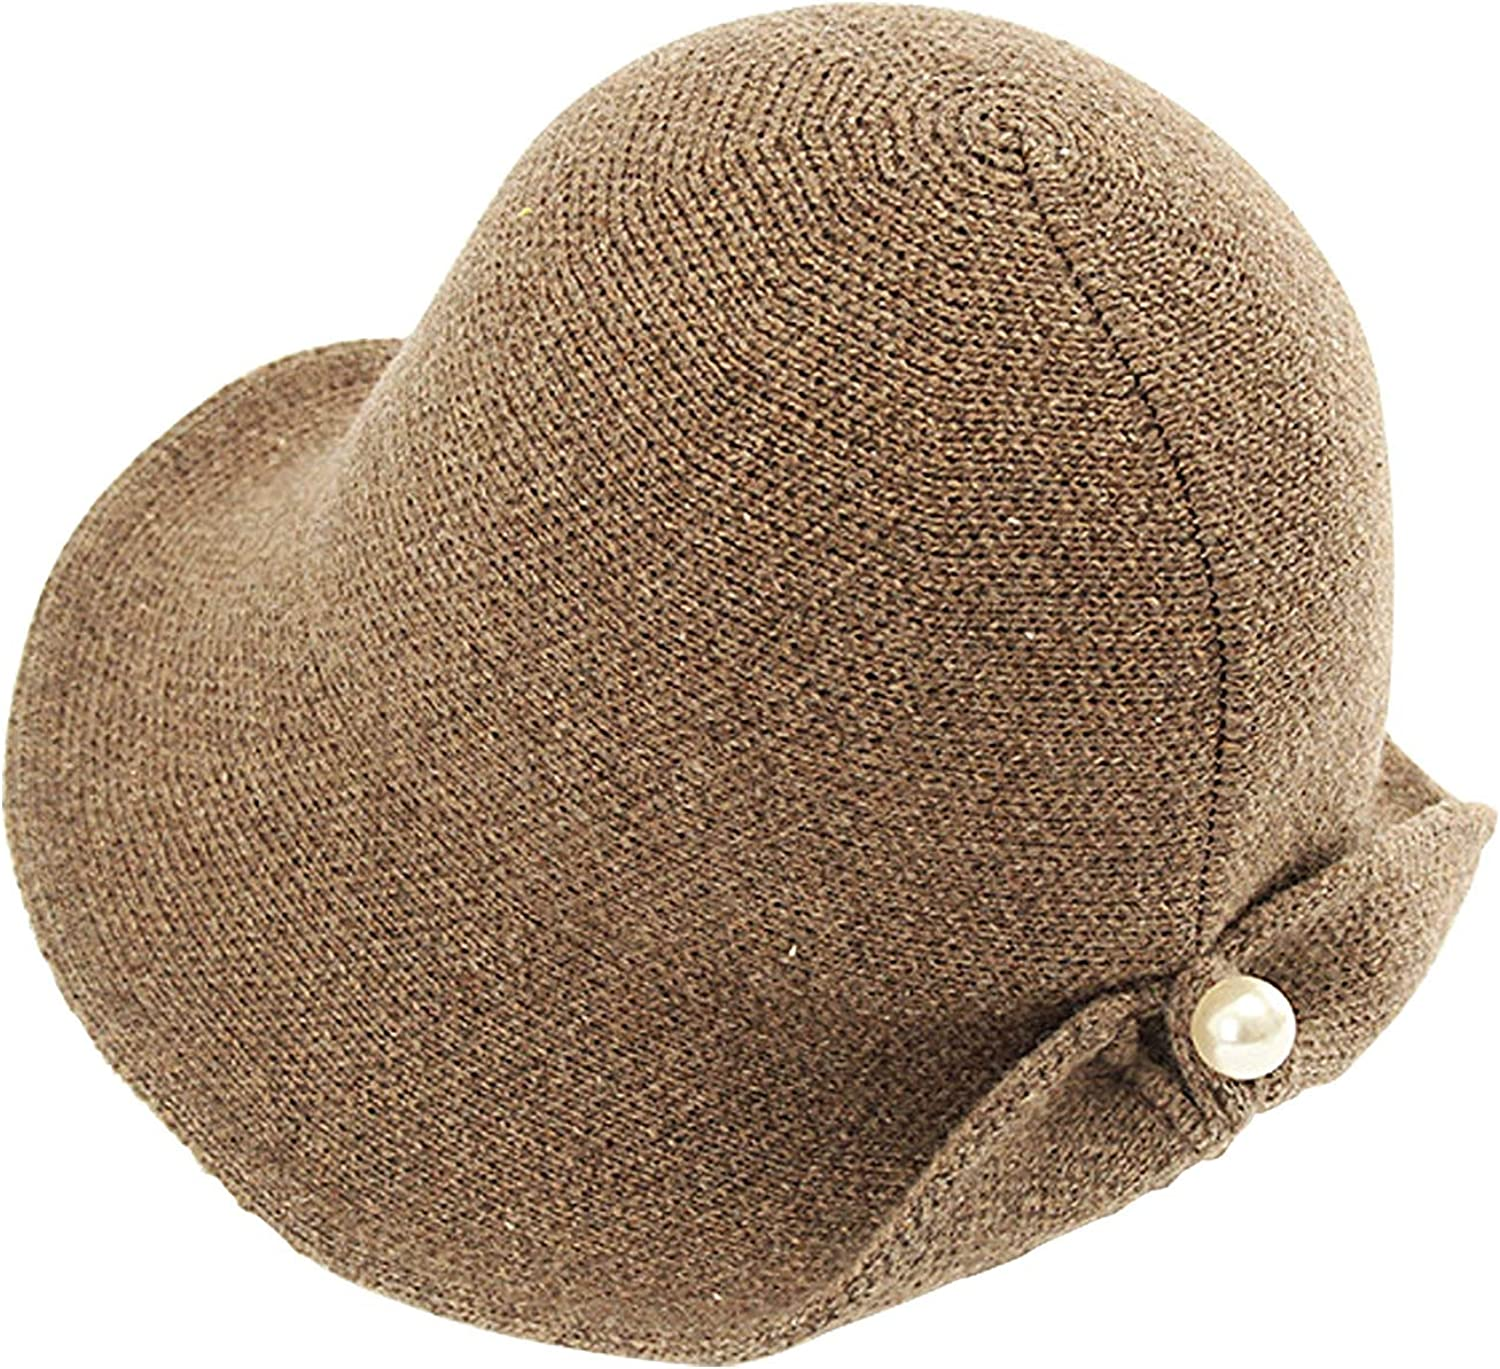 ANEWISH Womens Winter Wool Knit Bucket Hats Warm Soft Knitting Hat with Pearl Button Crimping